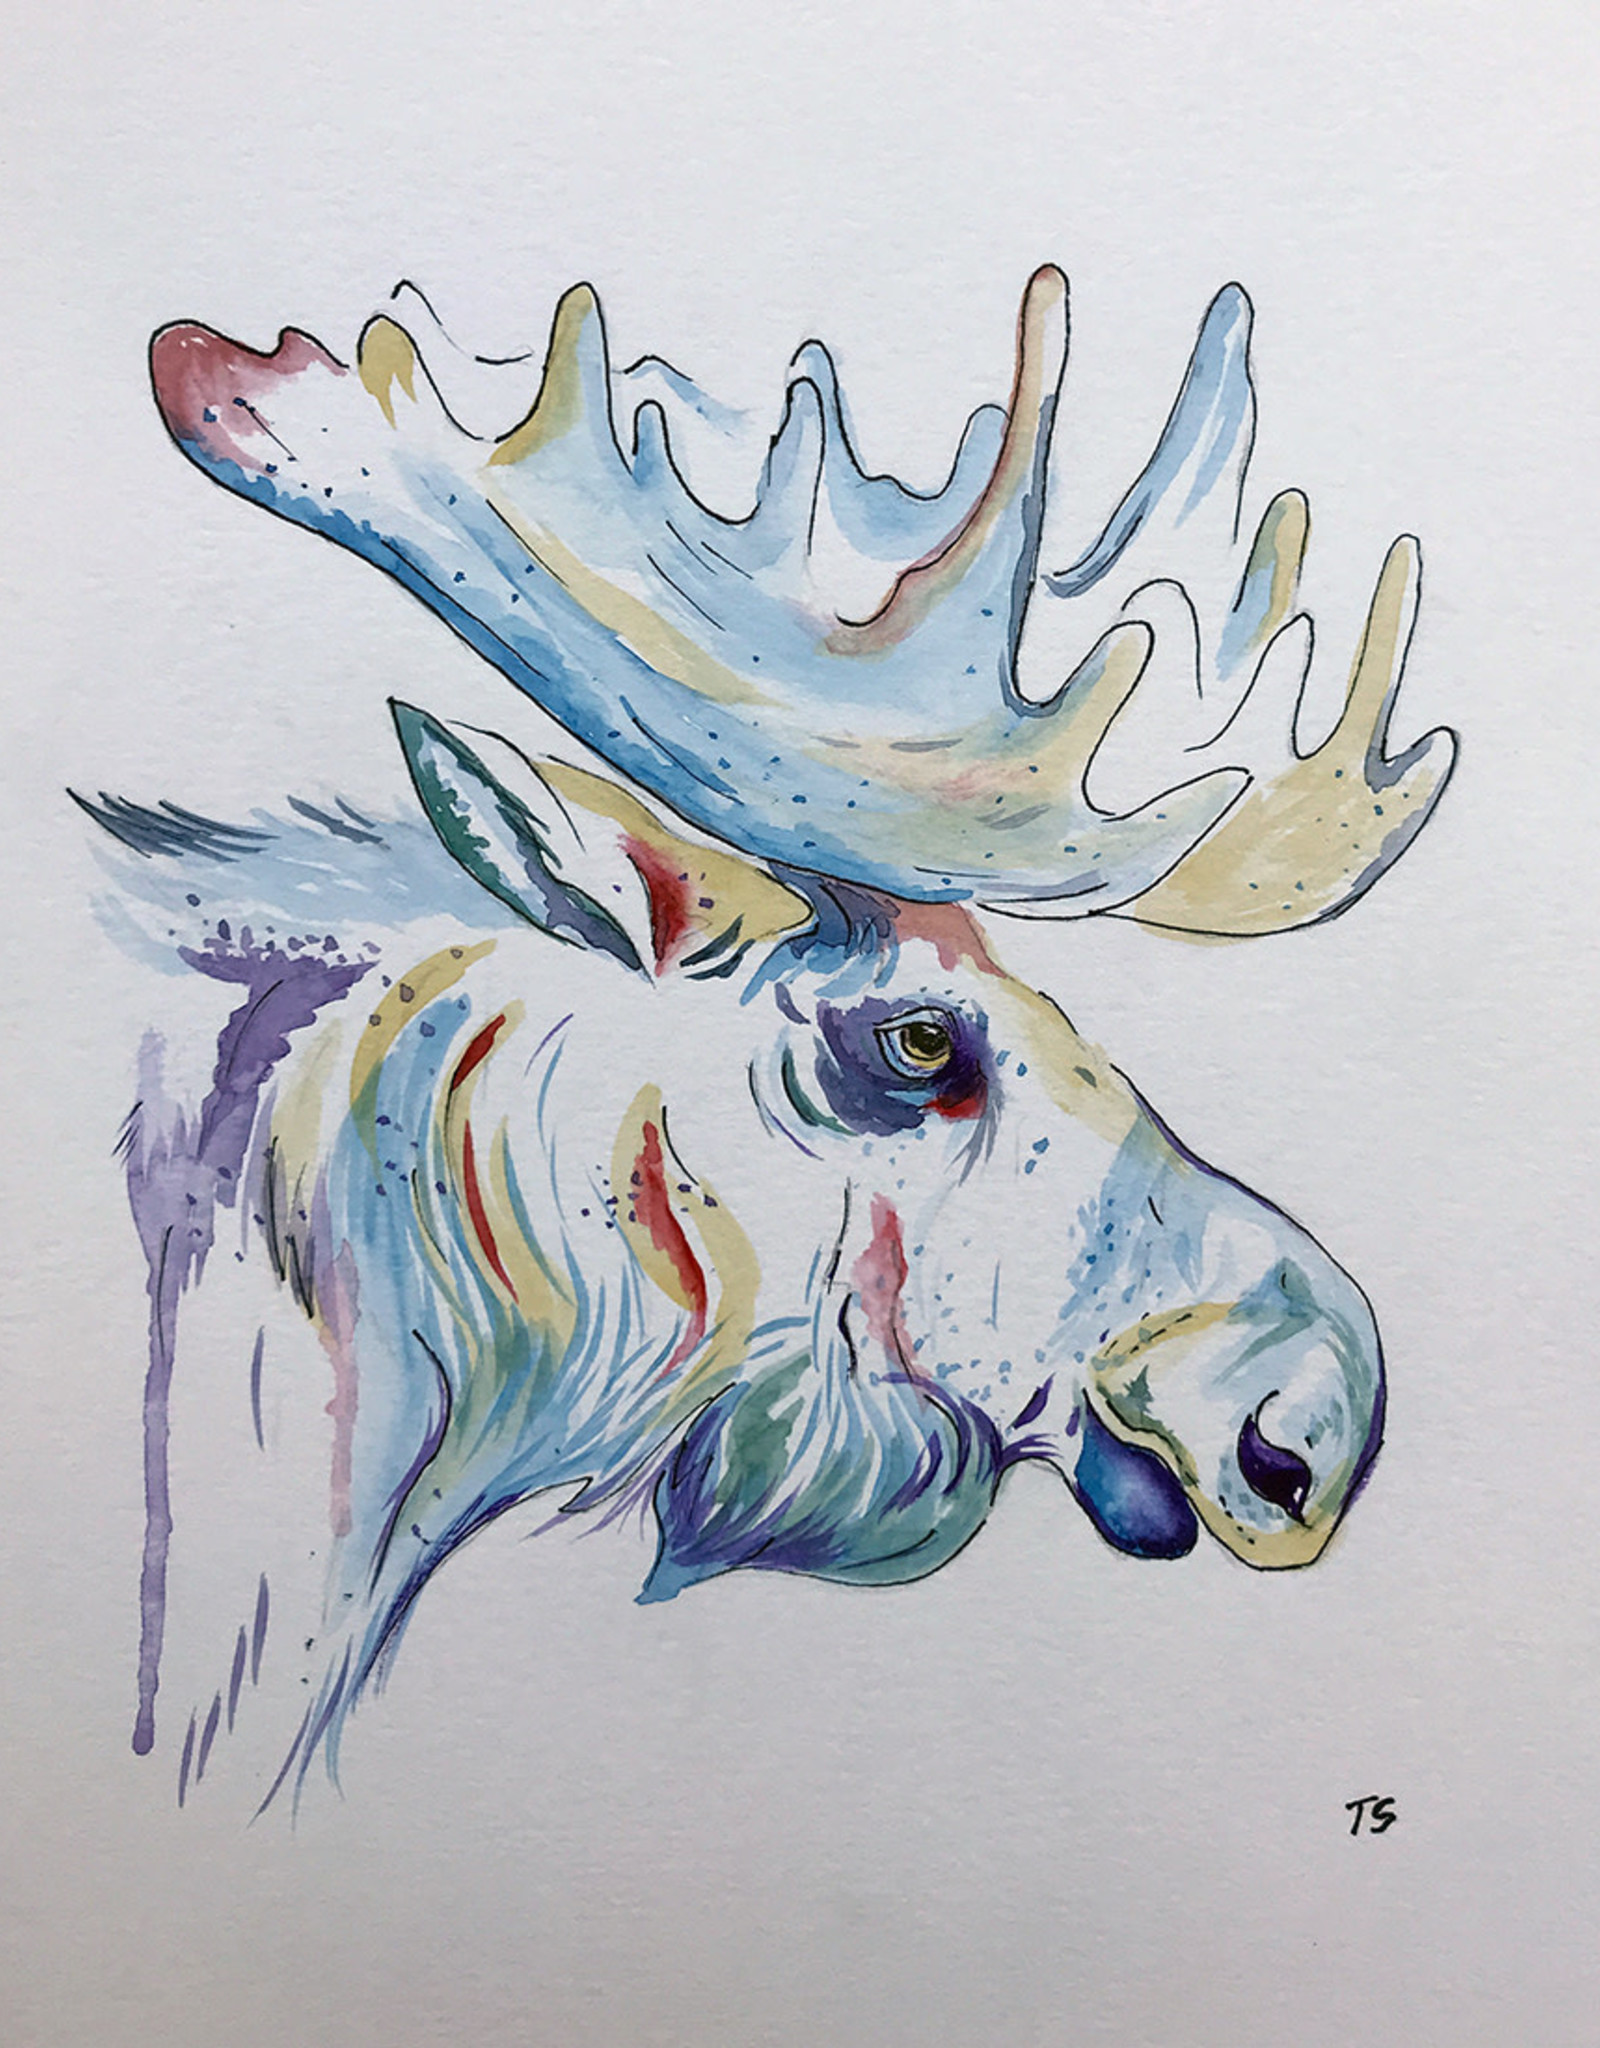 Tamara S Watercolour Art Class Moose Tues Feb 23 11-1:00 pm